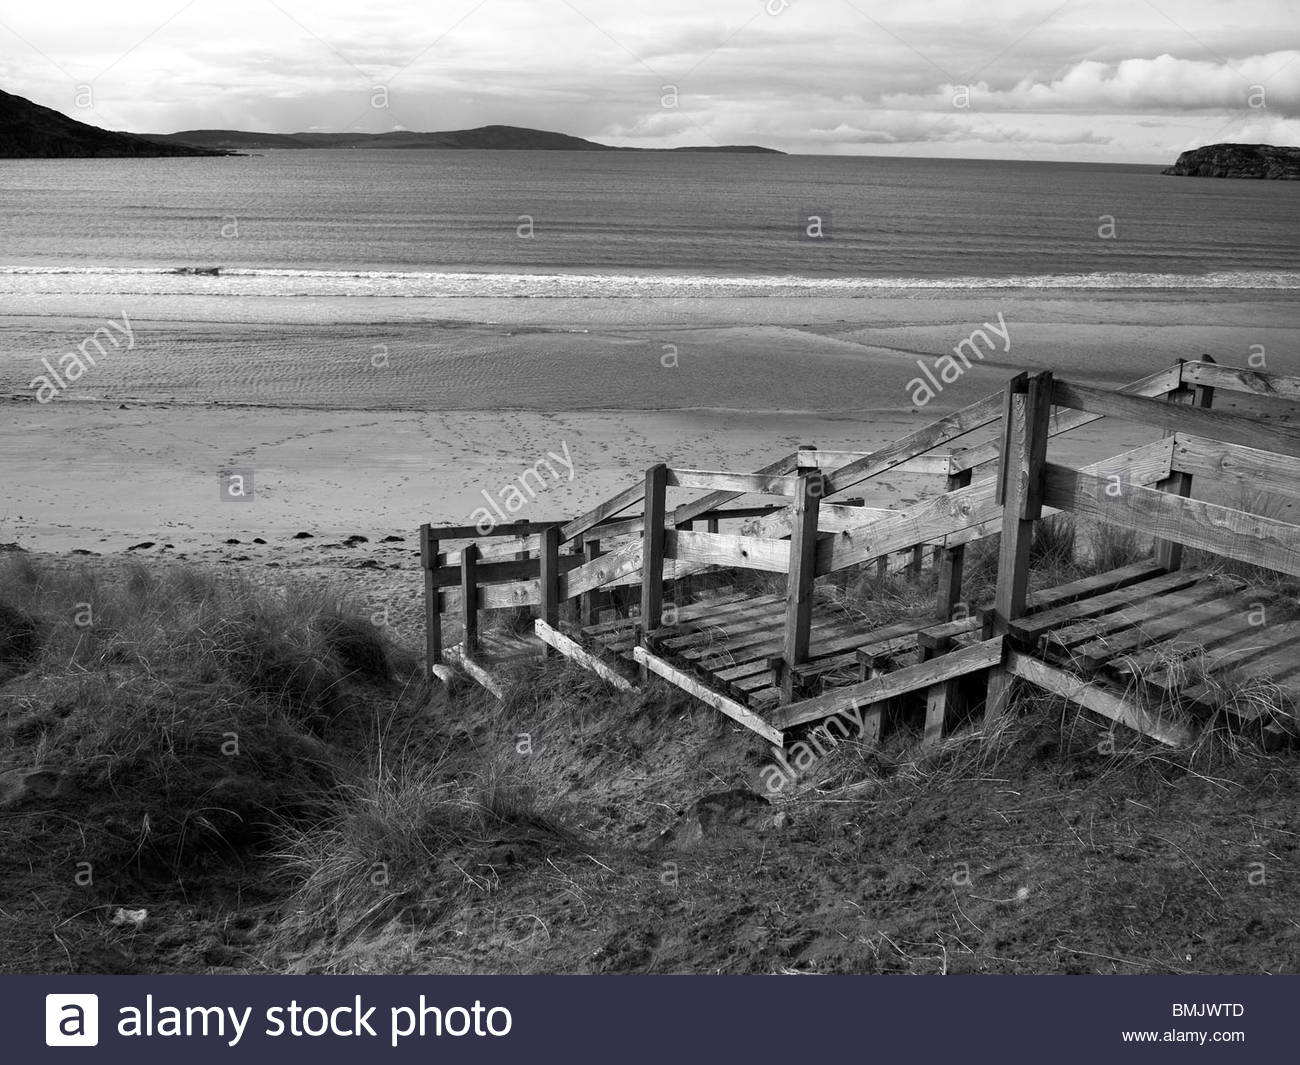 Gruinard  Bay and Beach, nr Laide, Wester Ross, NorthWest Scotland on the north coast 500 route - Stock Image